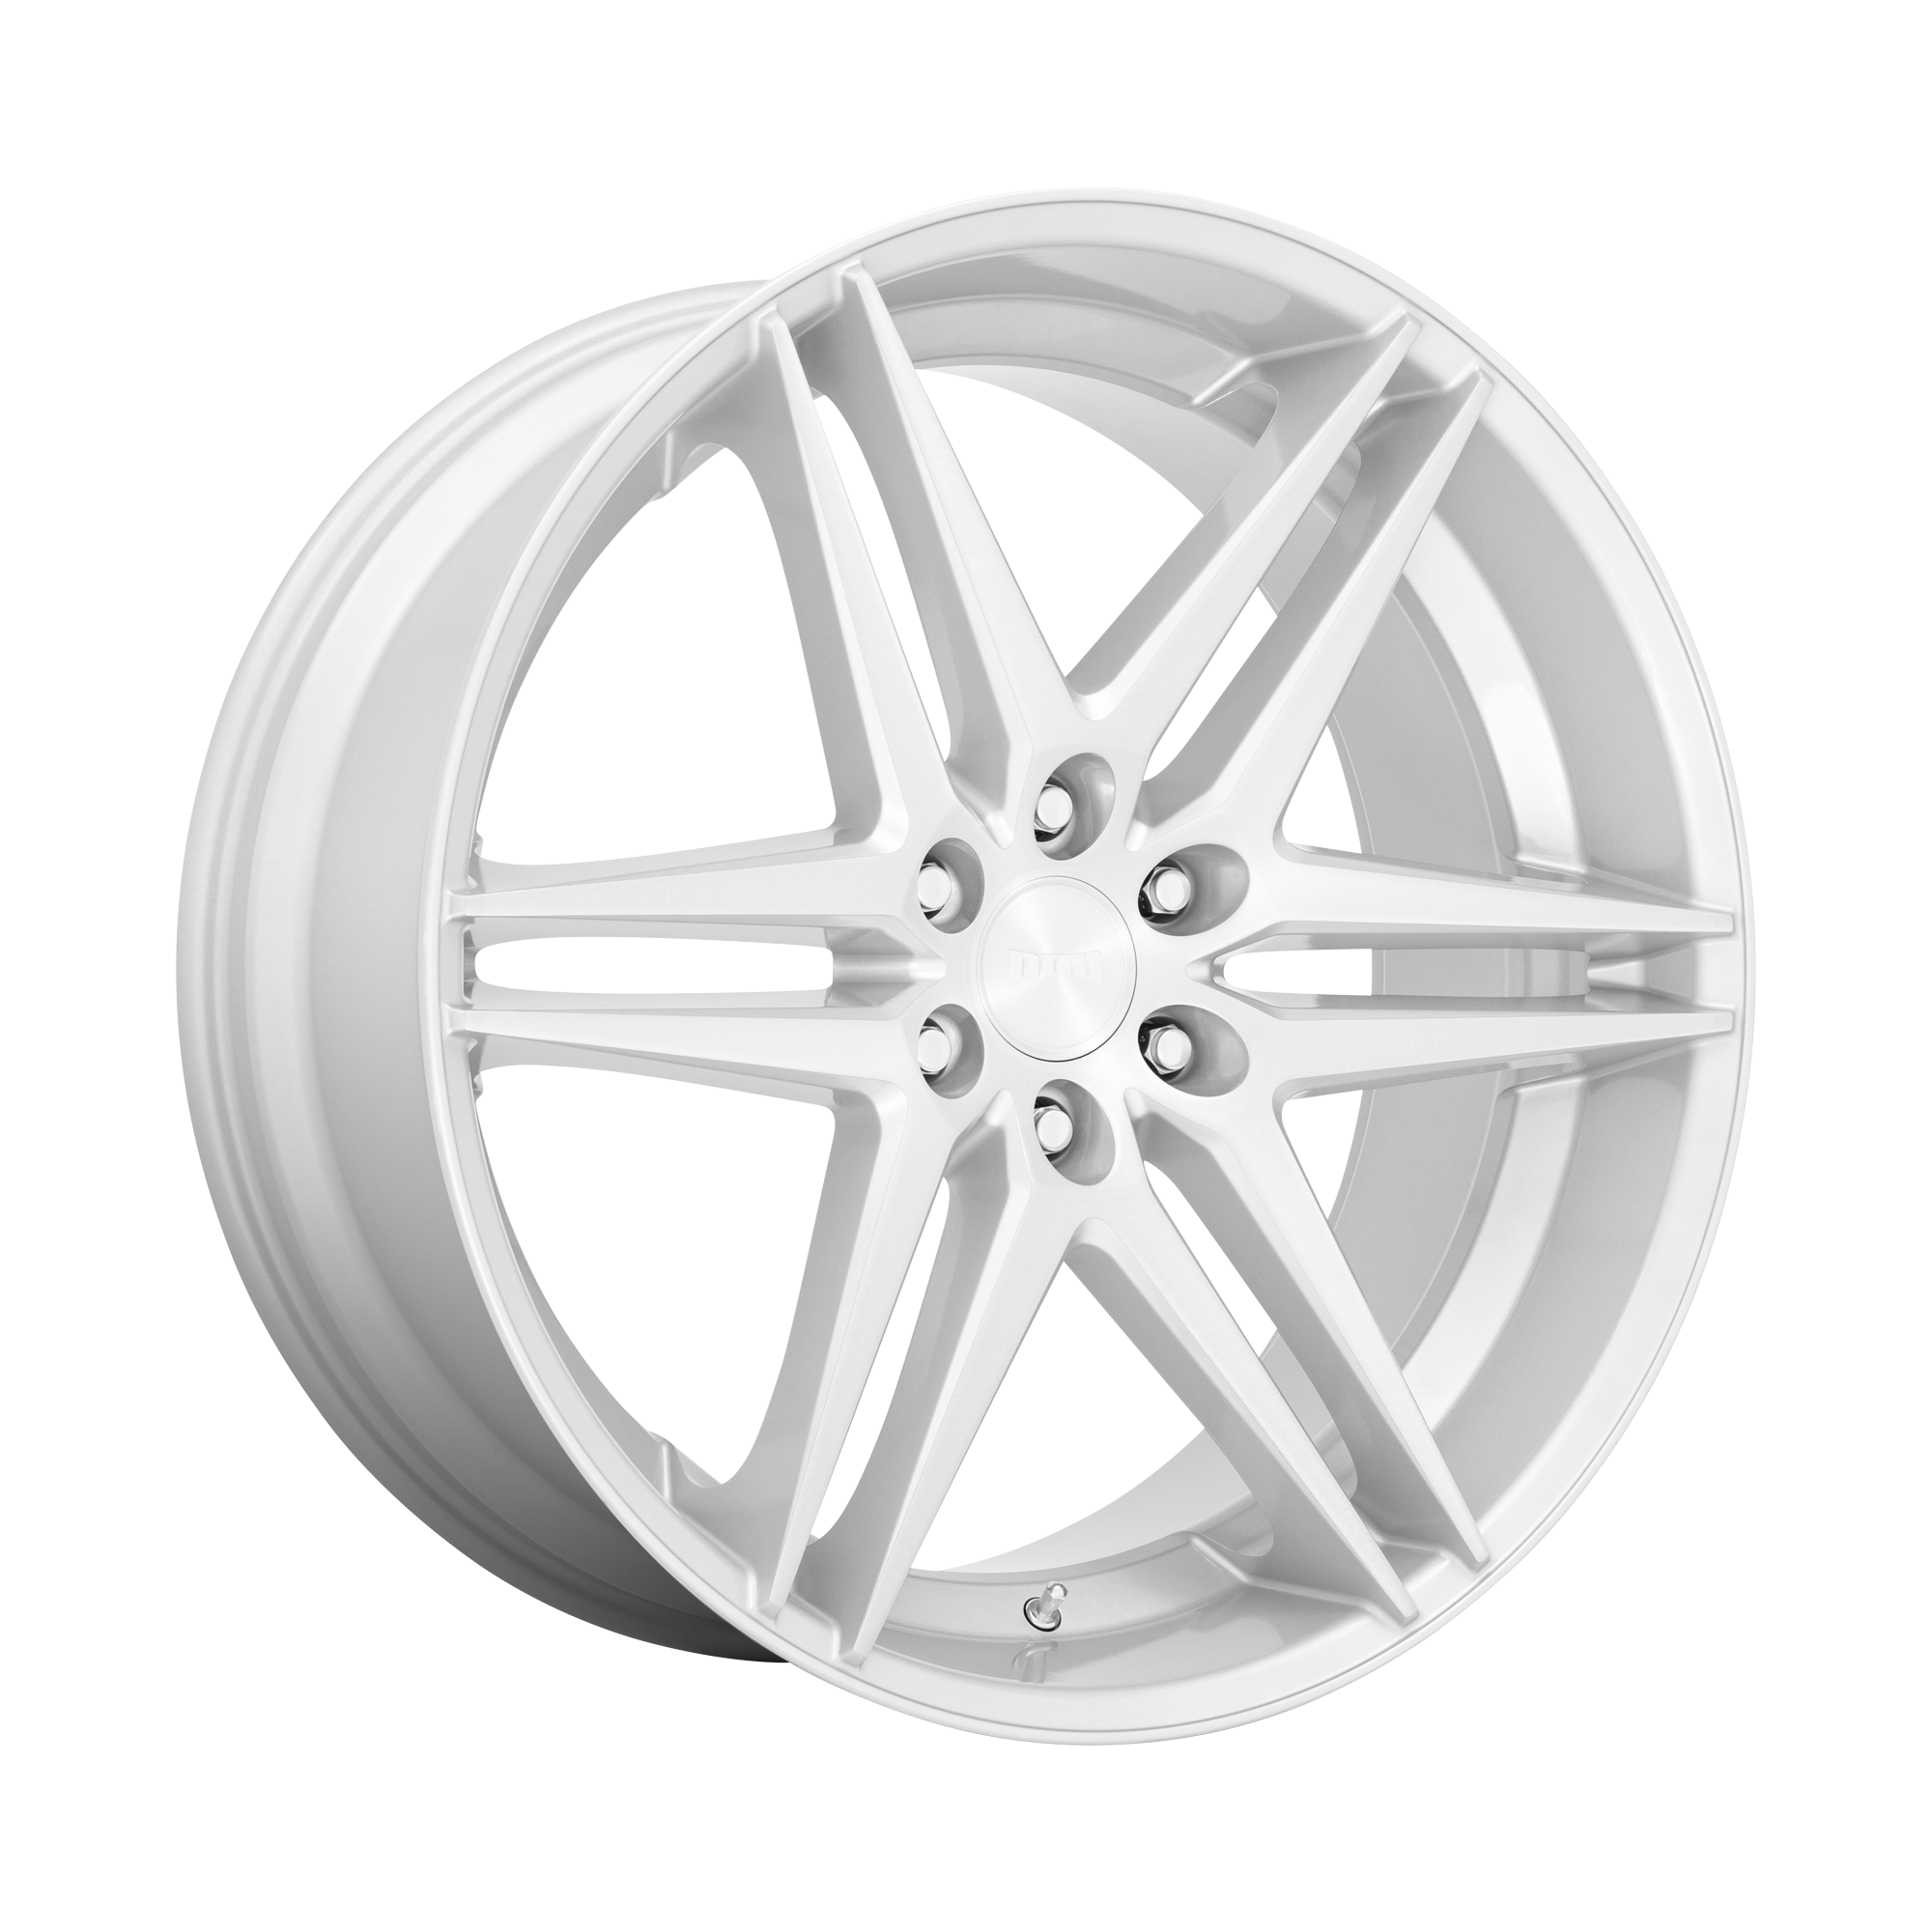 DUB Wheels Dirty Dog (S270) - Silver With Brushed Face Rim